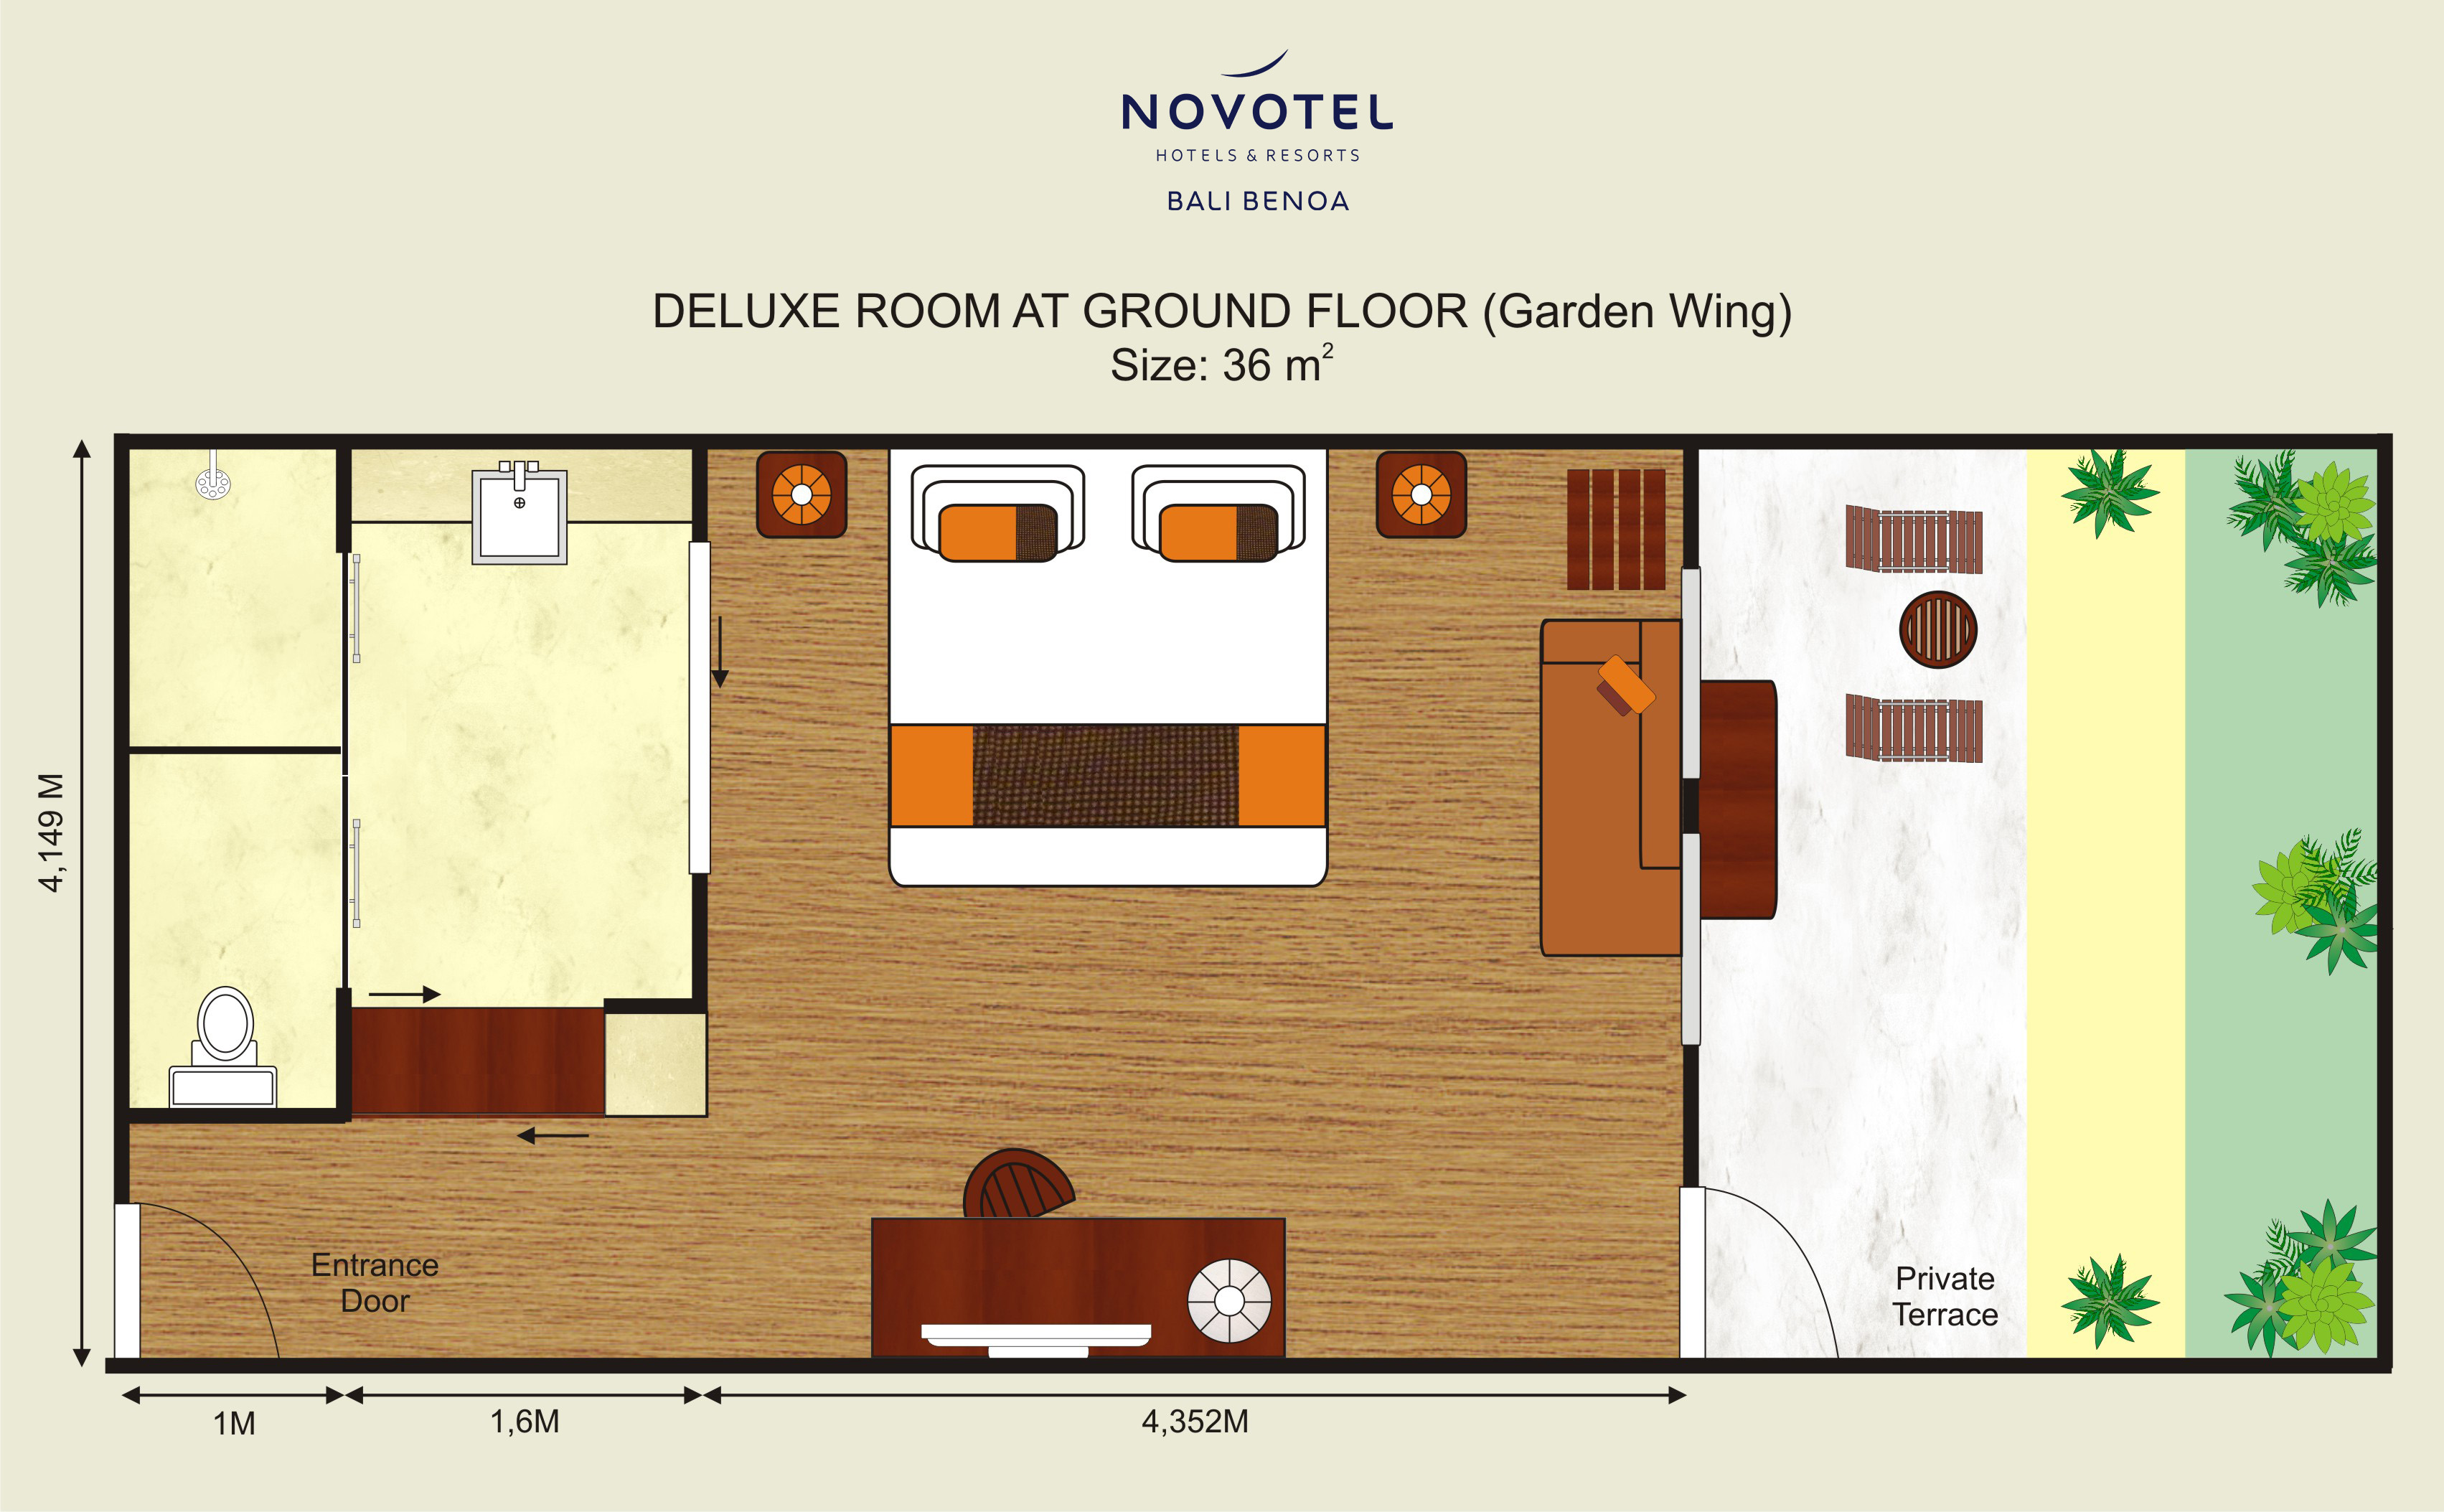 Deluxe Room  NOVOTEL BALI BENOA HOTELS  RESORTS